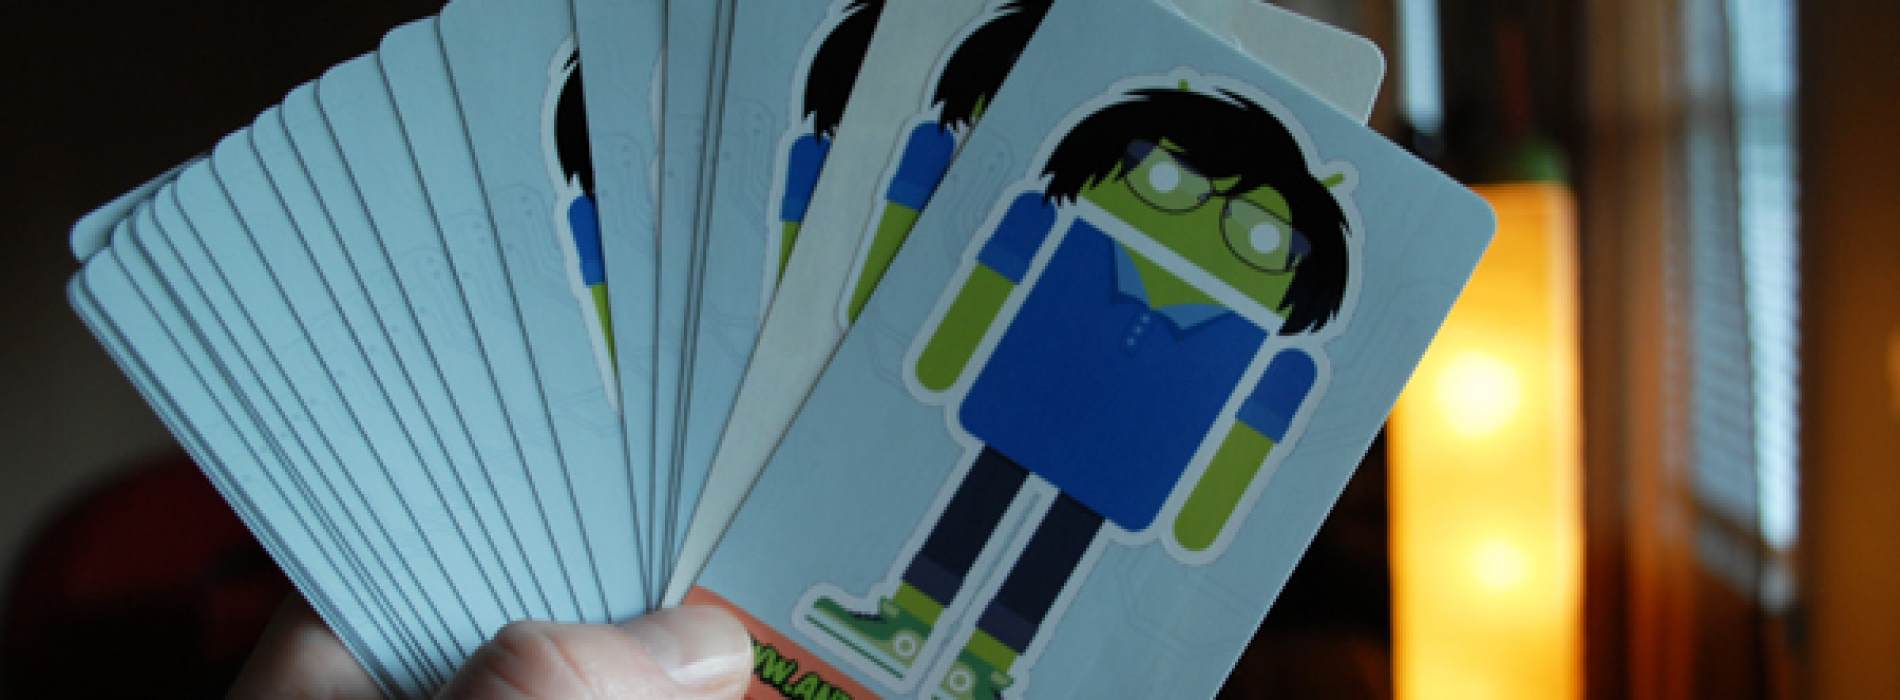 """Kickstarter project aims to create personalized """"Androidify Me"""" stickers"""